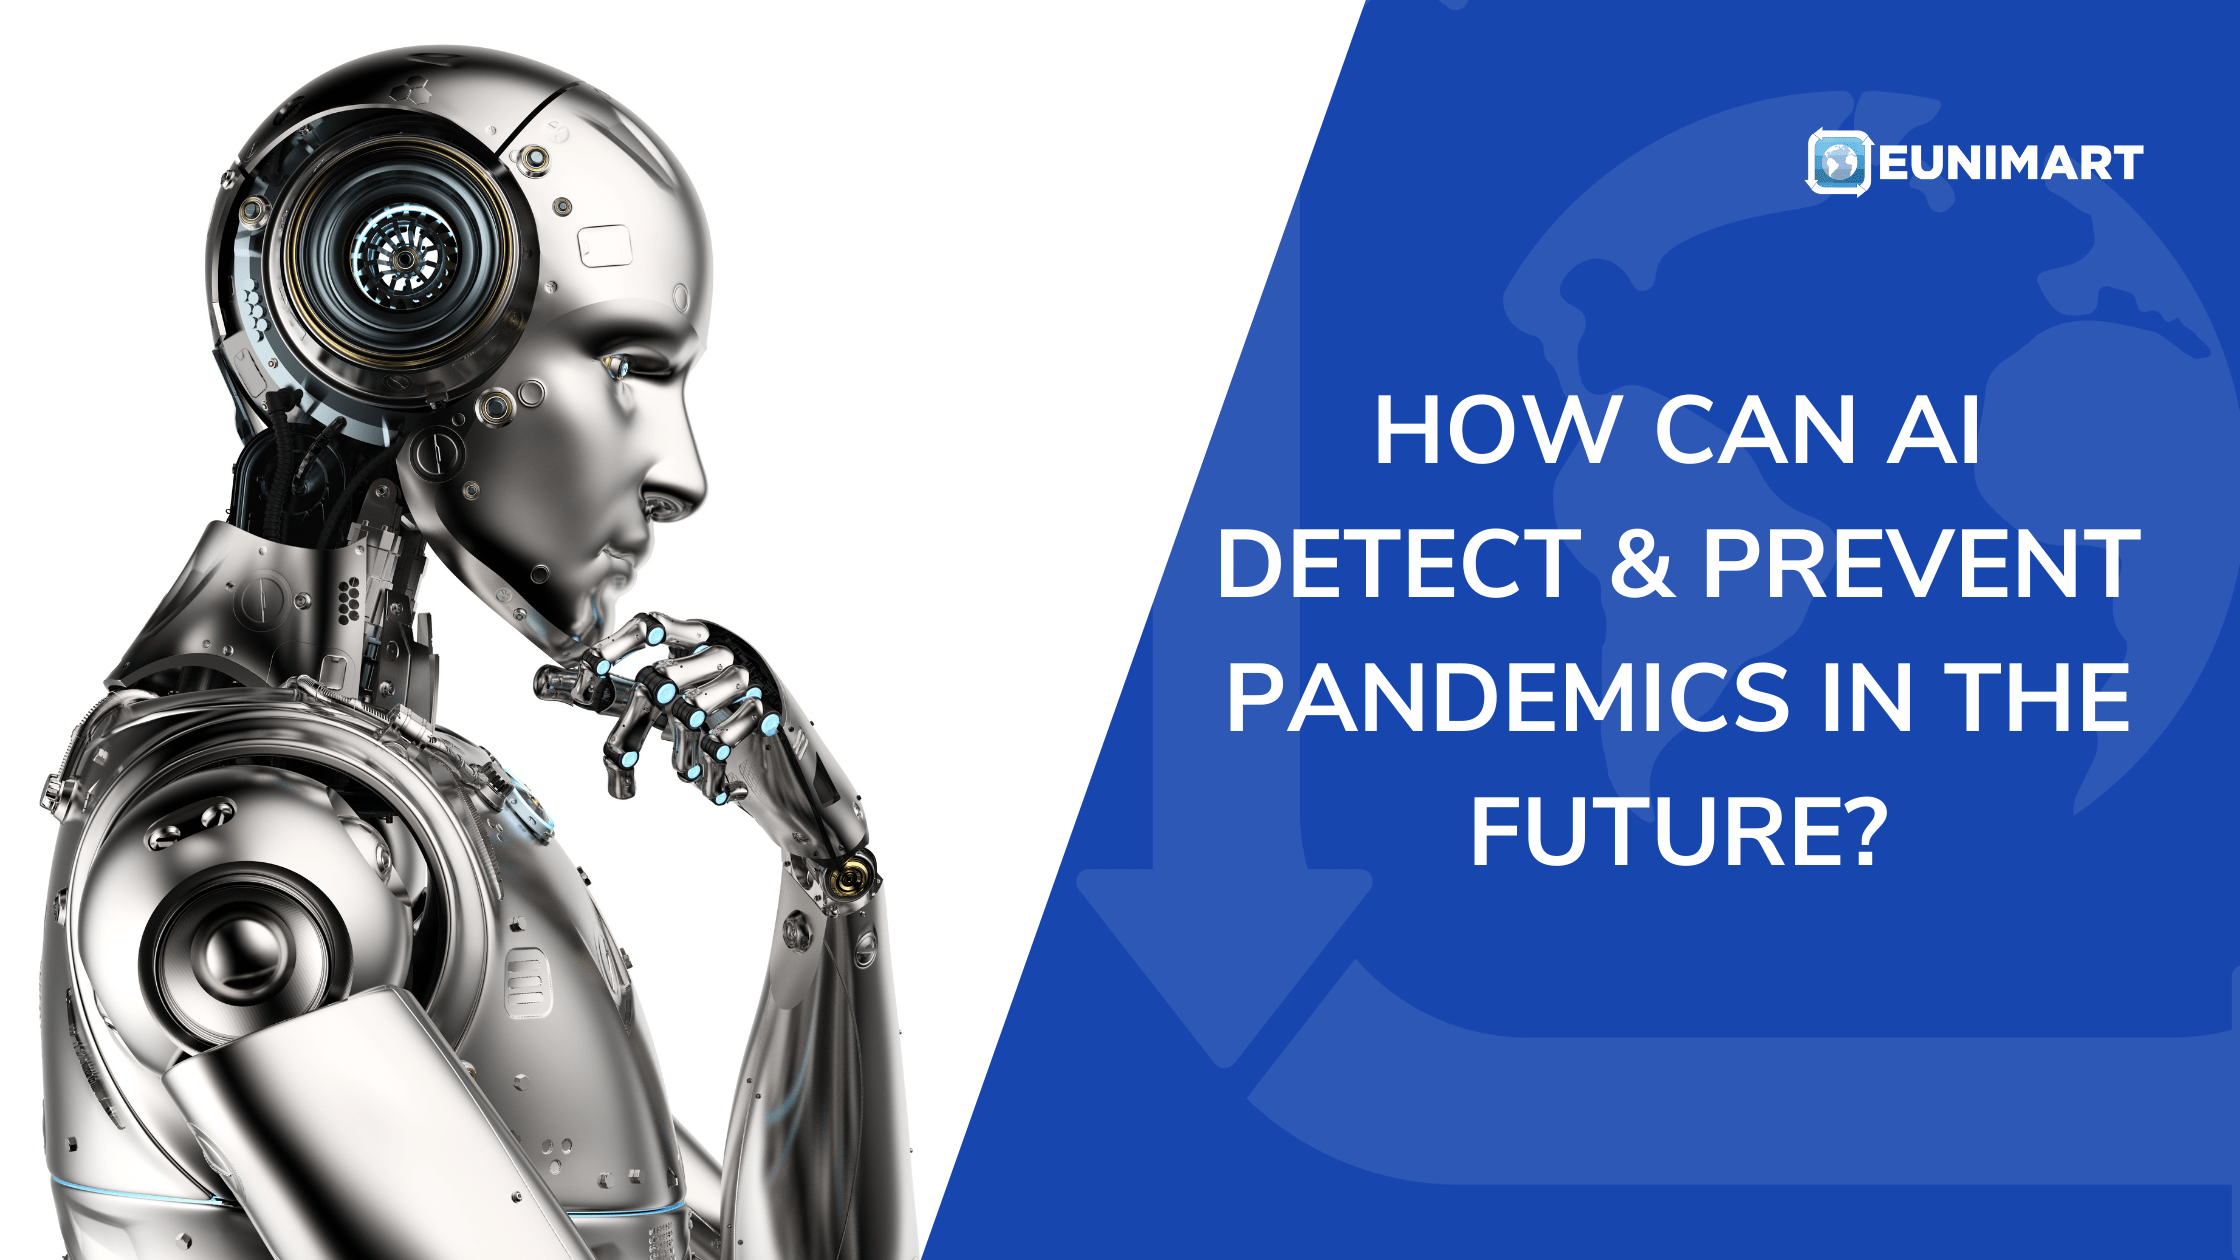 How can AI detect & prevent pandemics in the future?